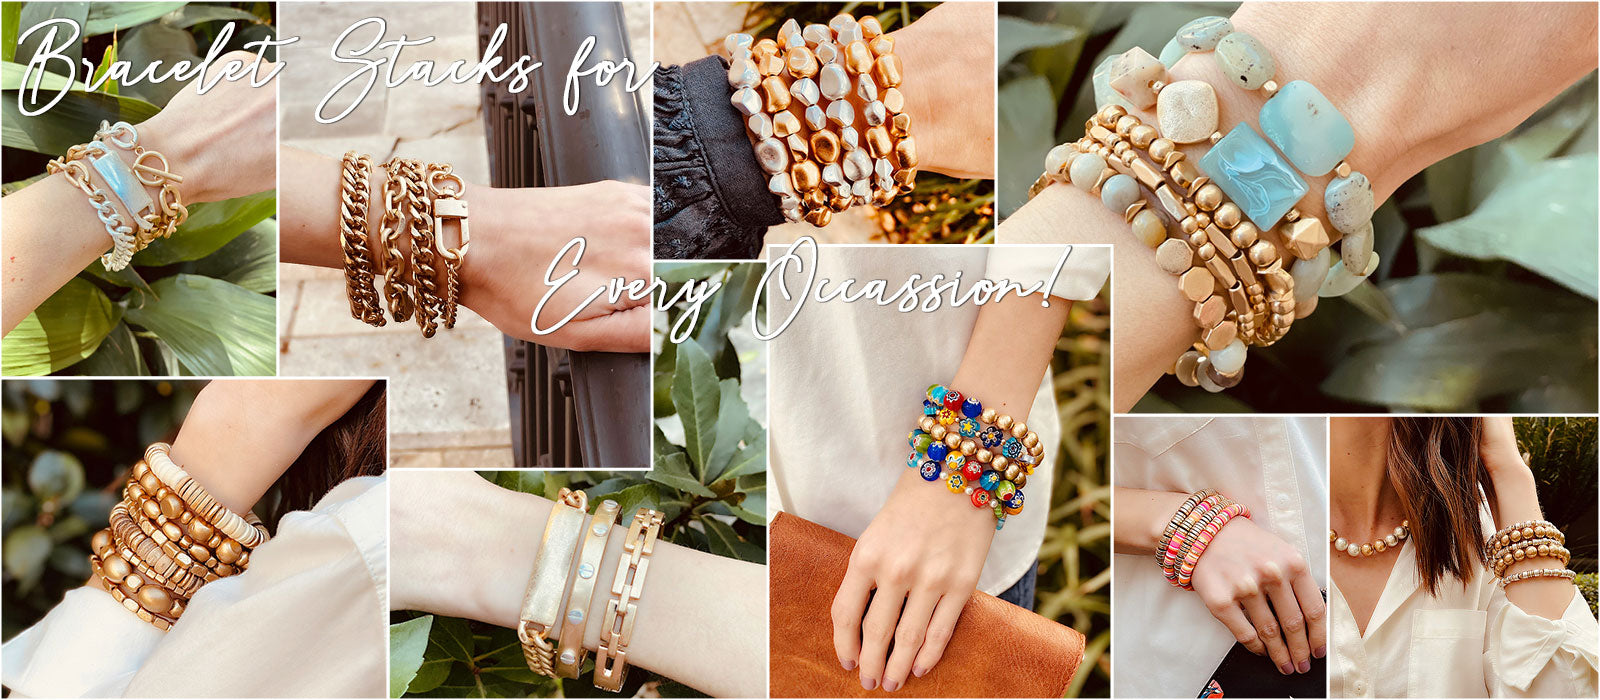 Bracelet Stacks for Every Occassion